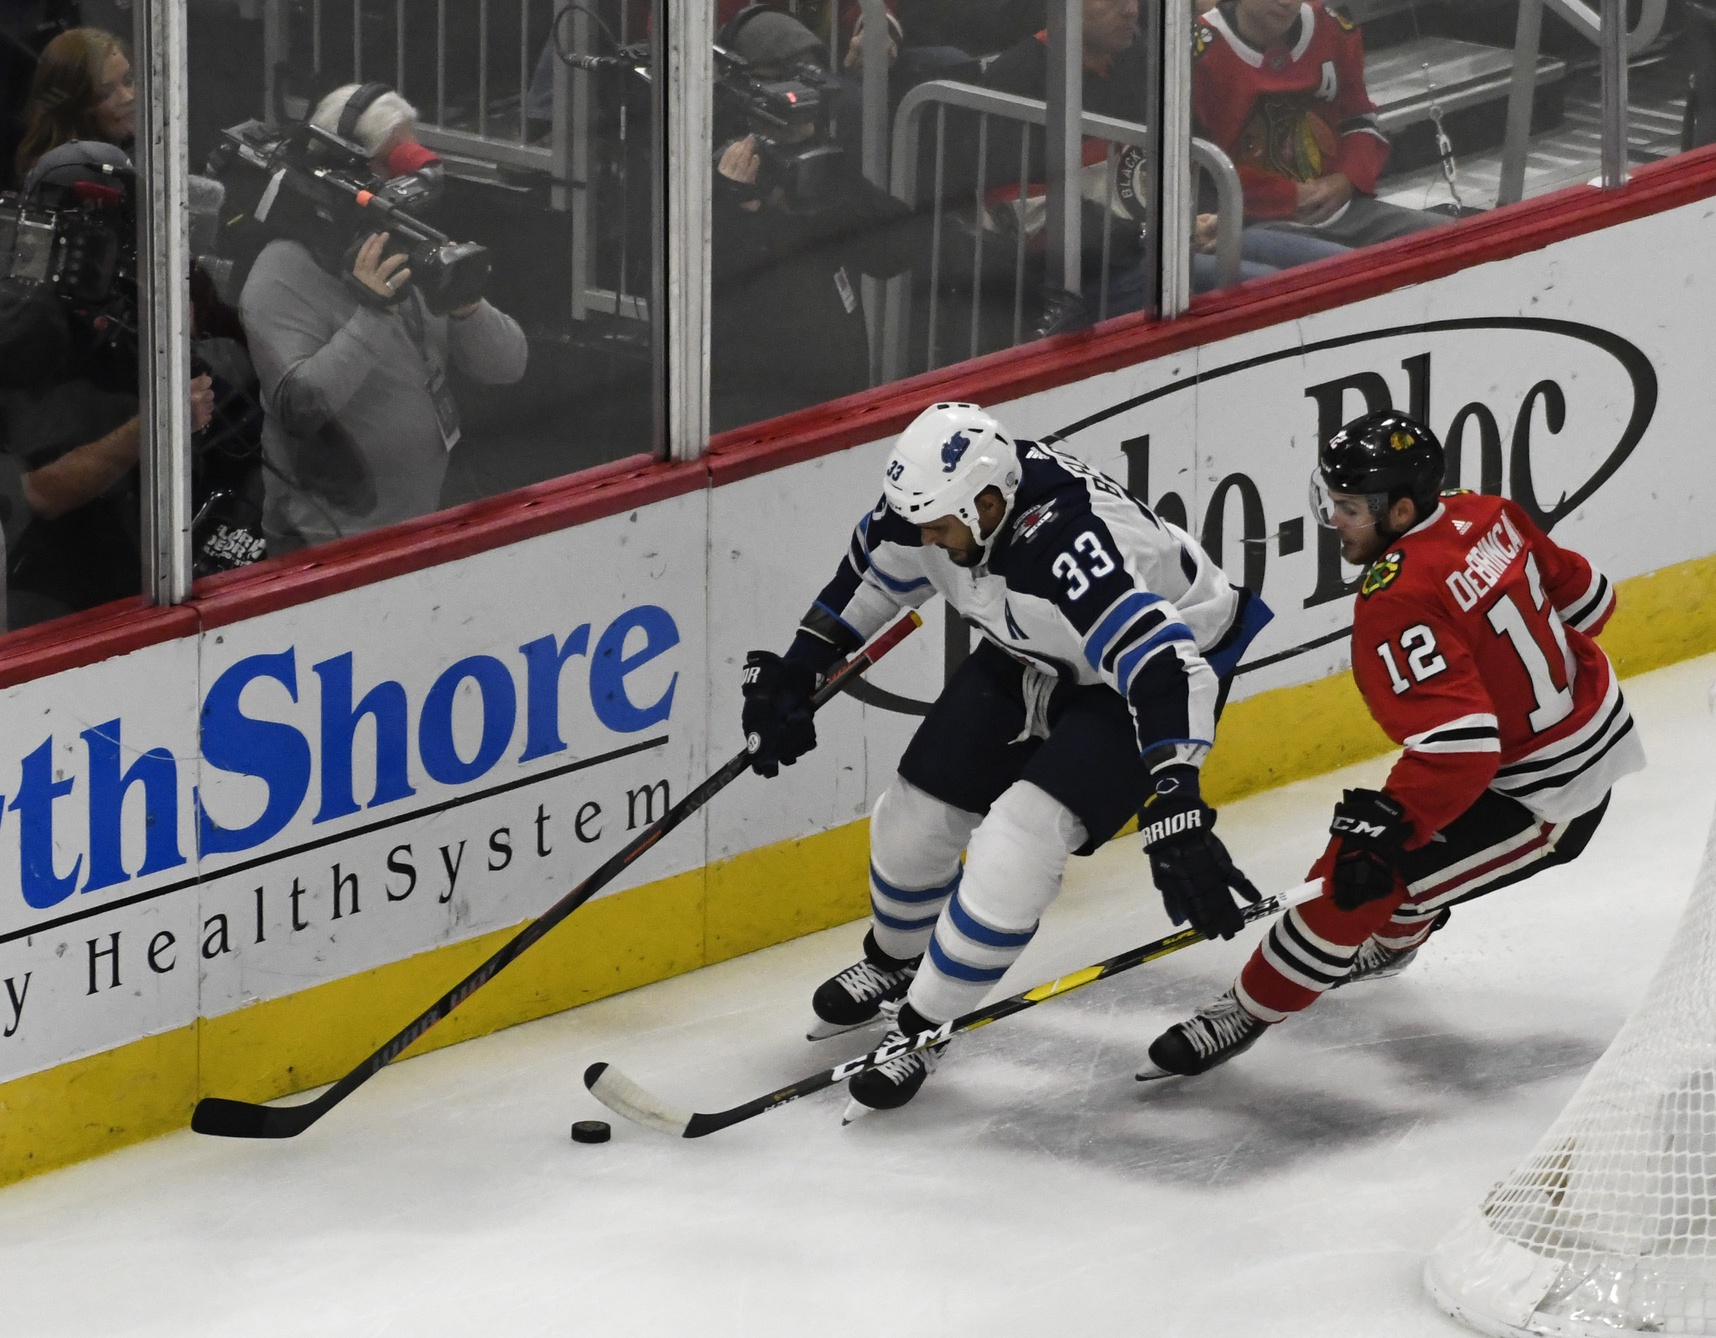 JNGD.S8.G32 Recap: Scheifele Again! Another Three Point Game Paces Jets To OT Win In Chicago